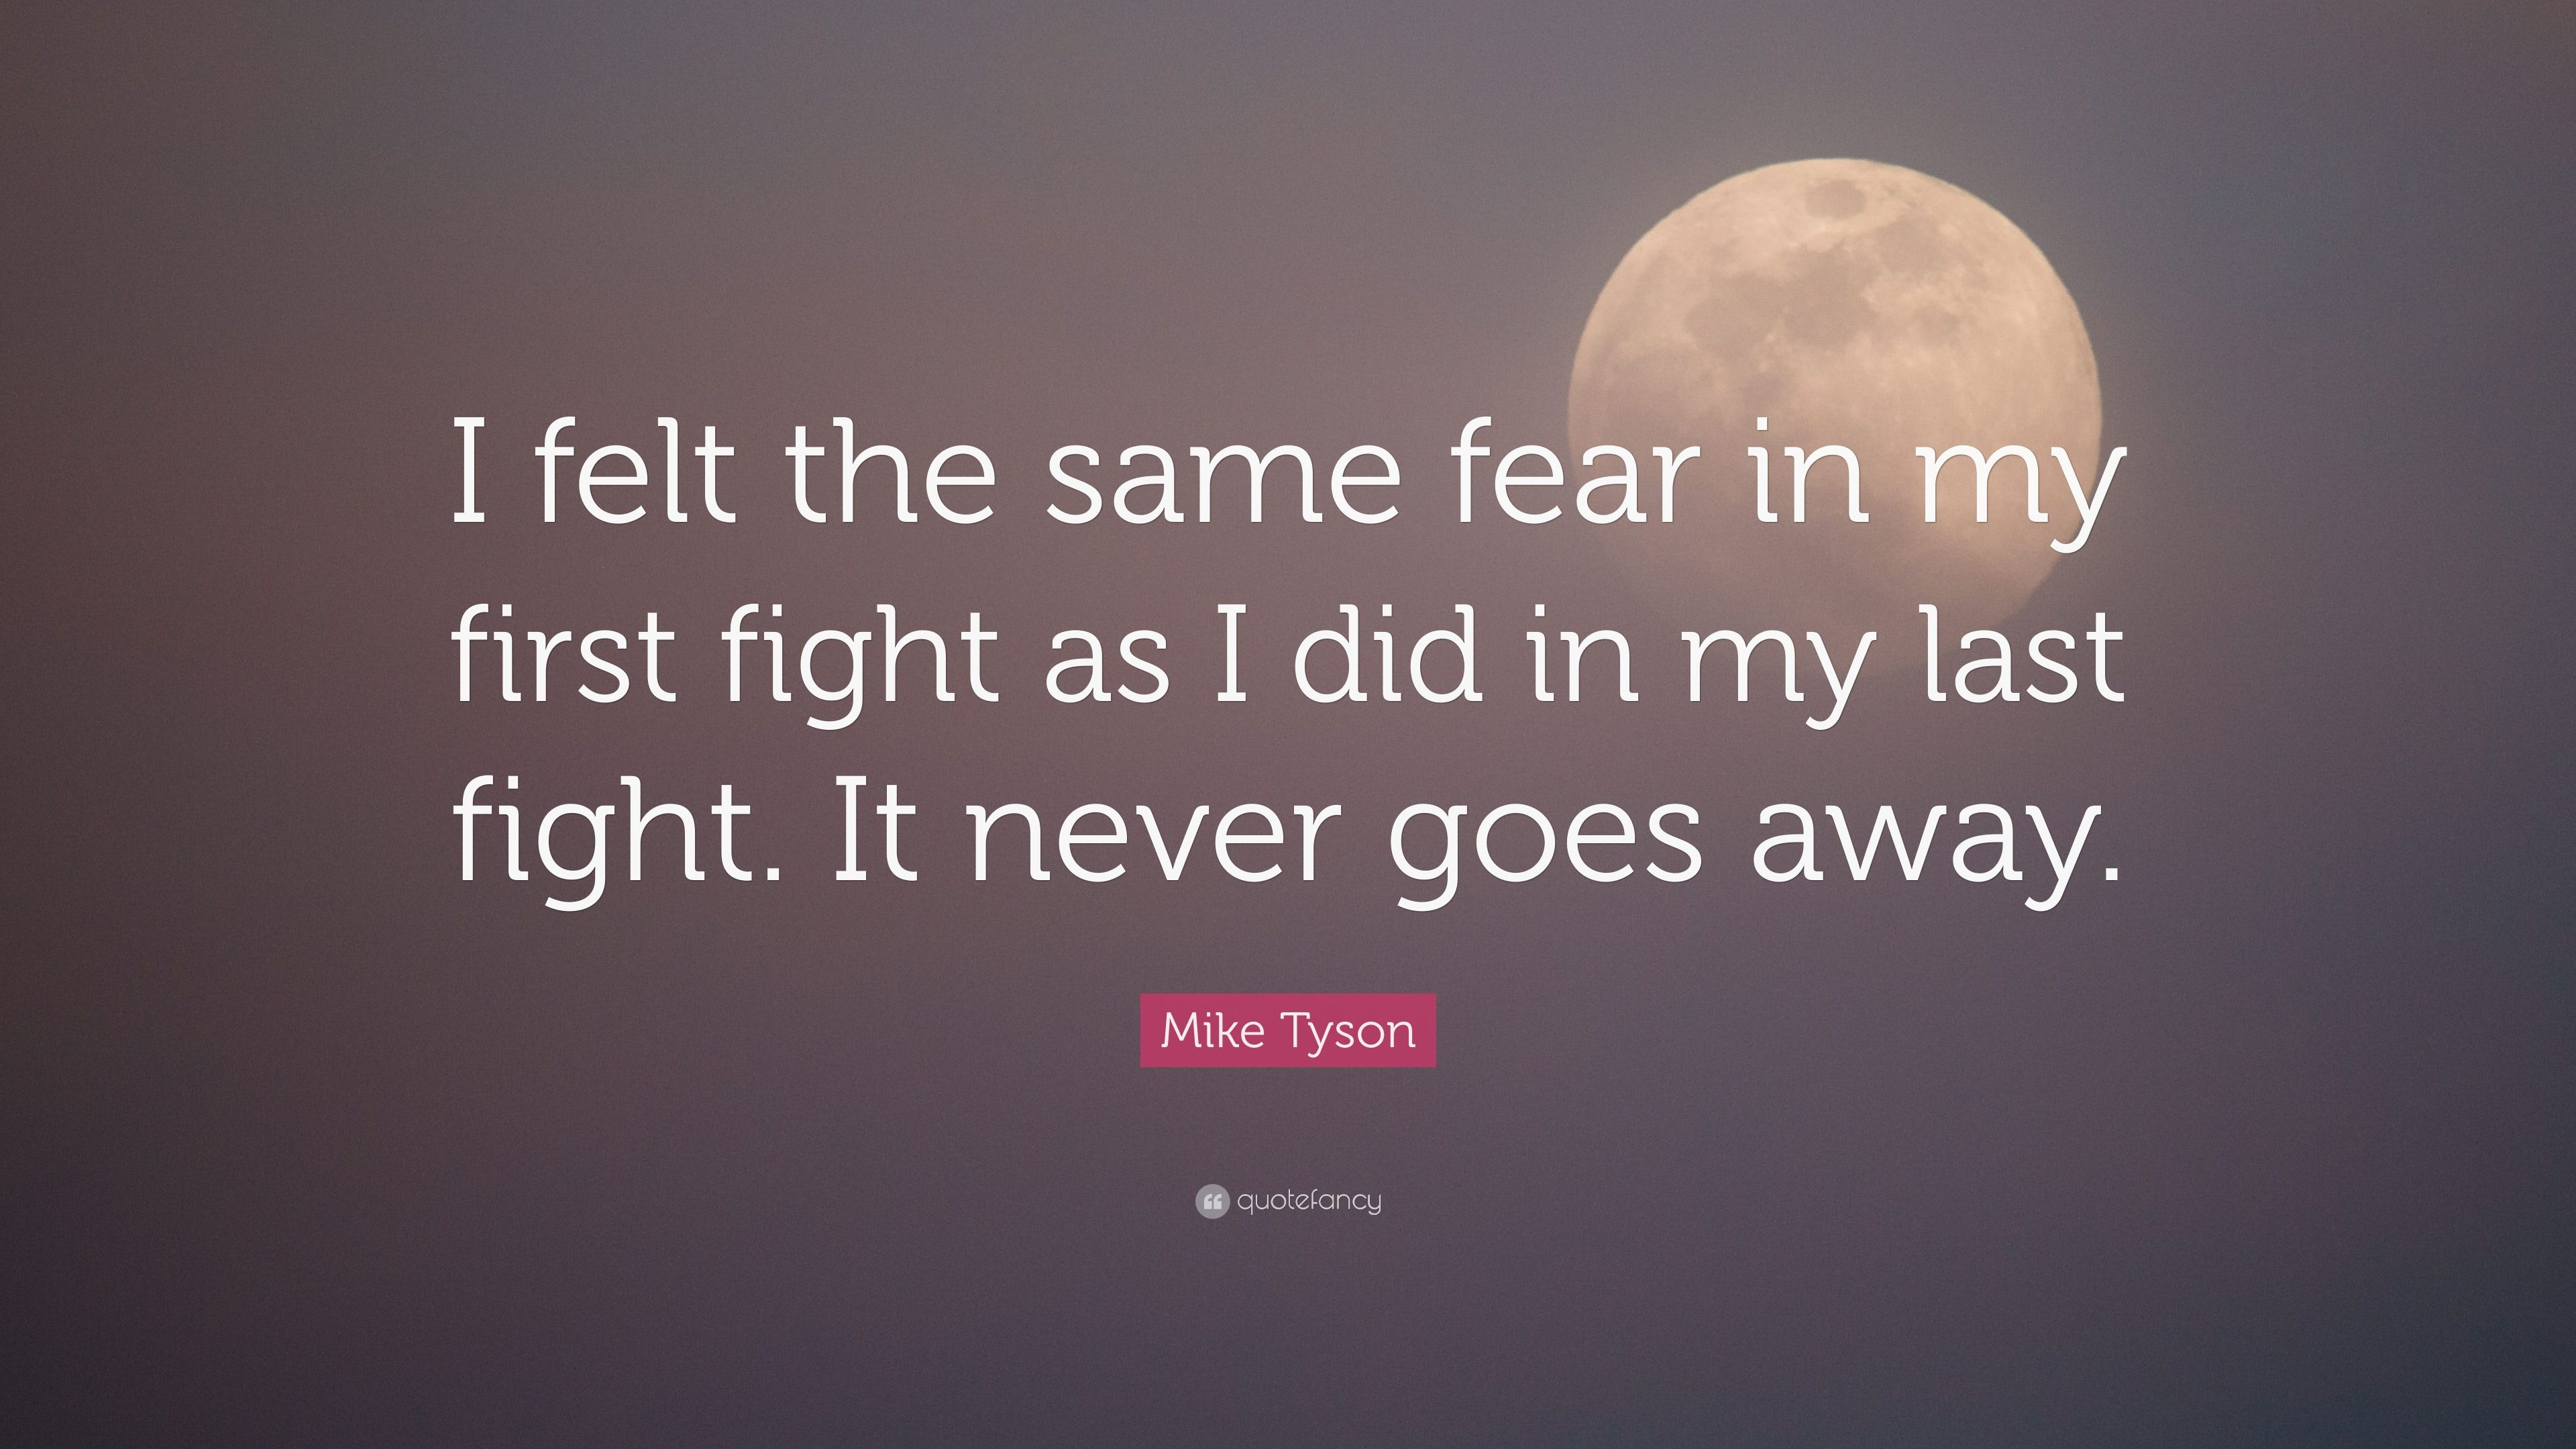 Mike Tyson Quotes Fear